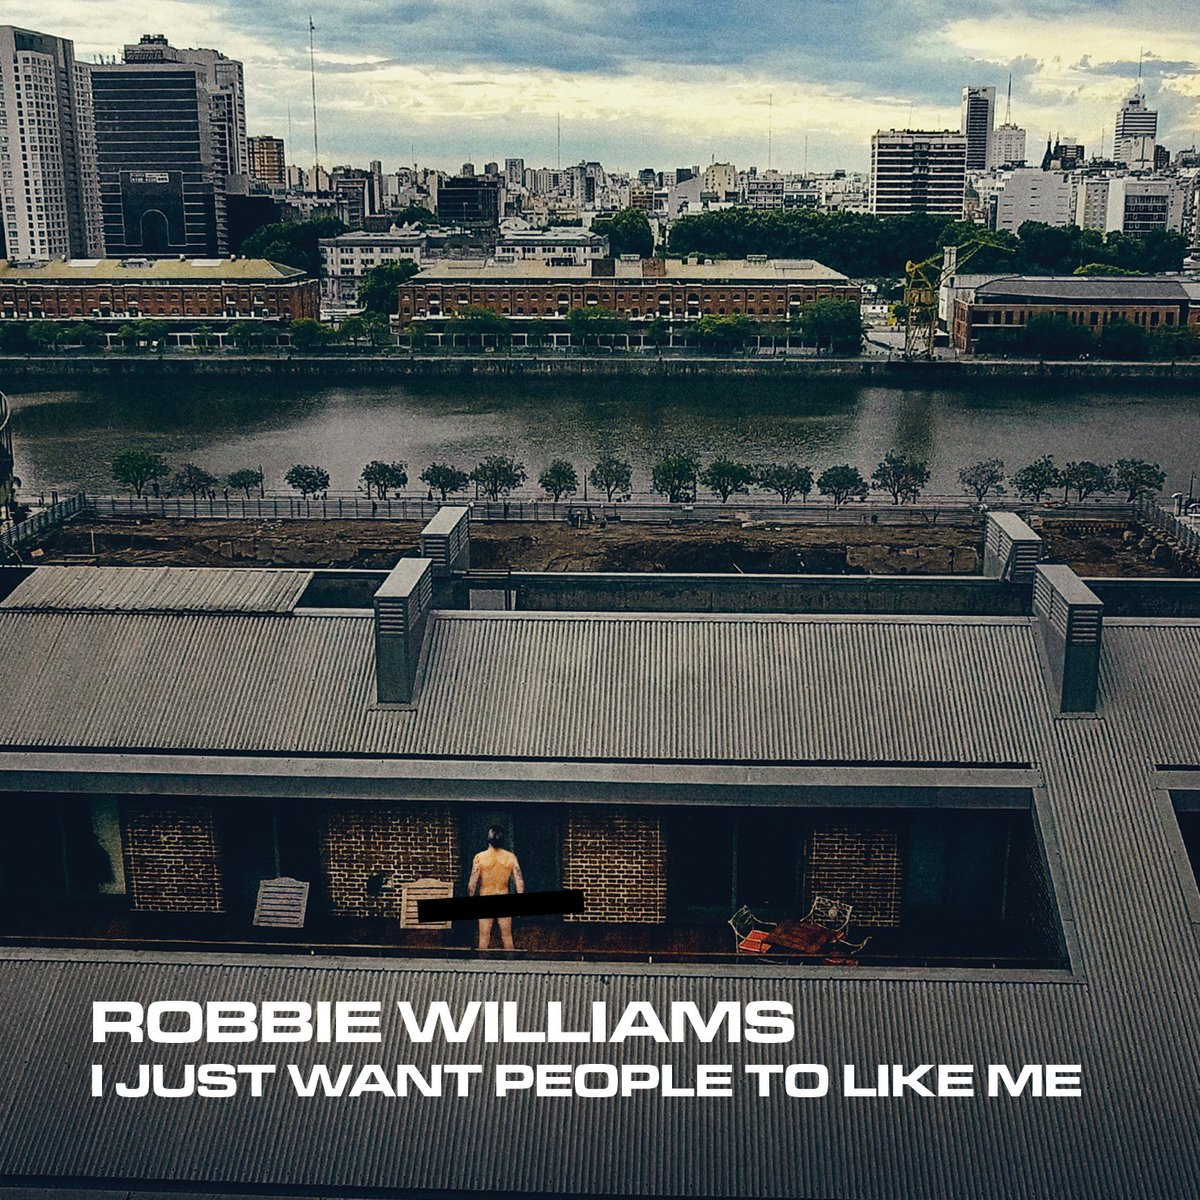 Get excited! You can stream my brand new track #IJustWantPeopleToLikeMe on @SpotifyUK here >> https://t.co/Mrlio9kzW7 https://t.co/fc8Qy9NkwJ